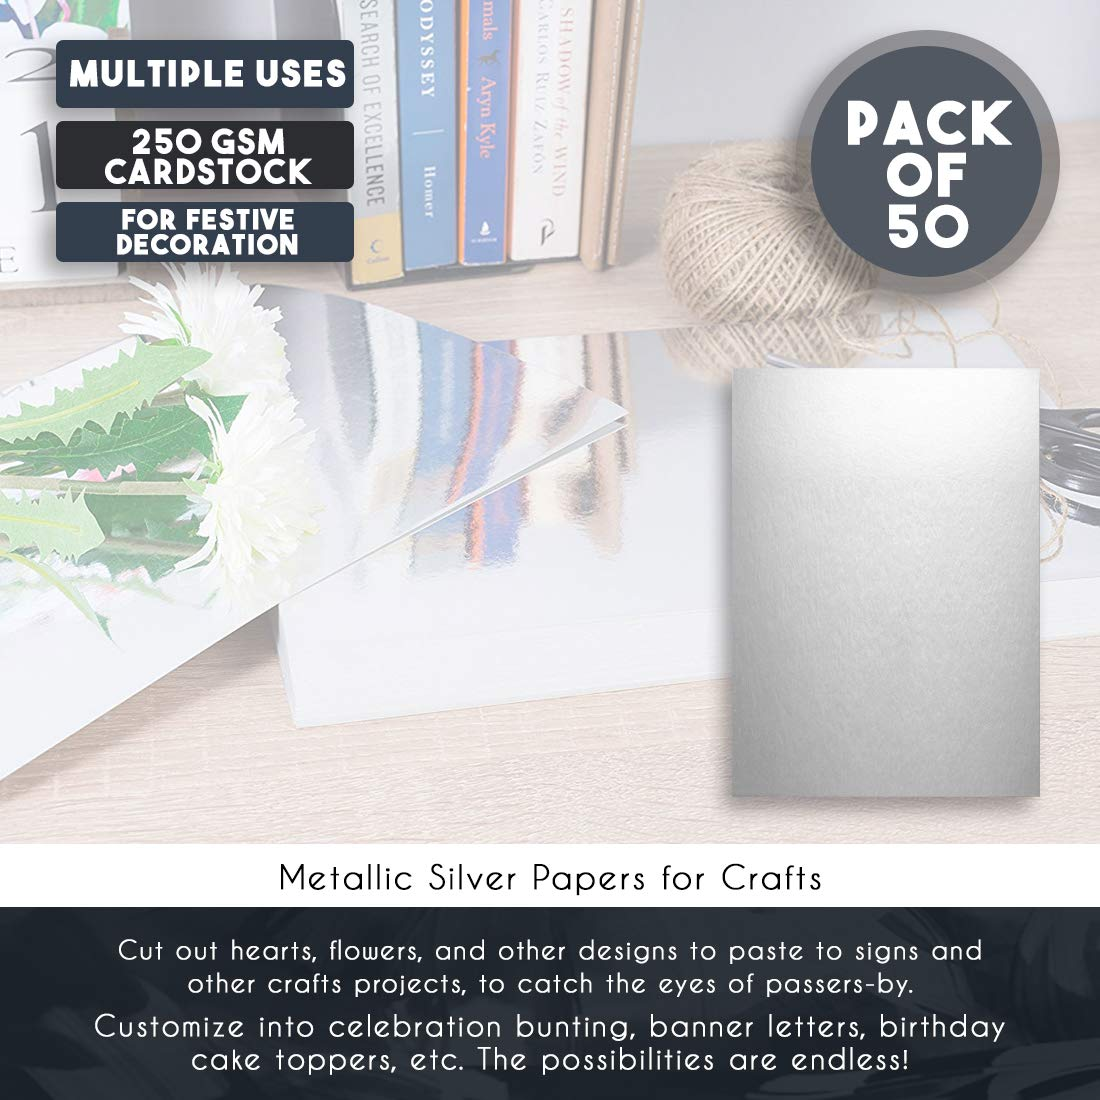 Shimmer Paper for Crafts Baby Shower A4 Size 250gsm Cardstock 11.75 x 8.5 Inches 50-Pack Metallic Silver Cardstock Wedding Juvale Metallic Silver Papers